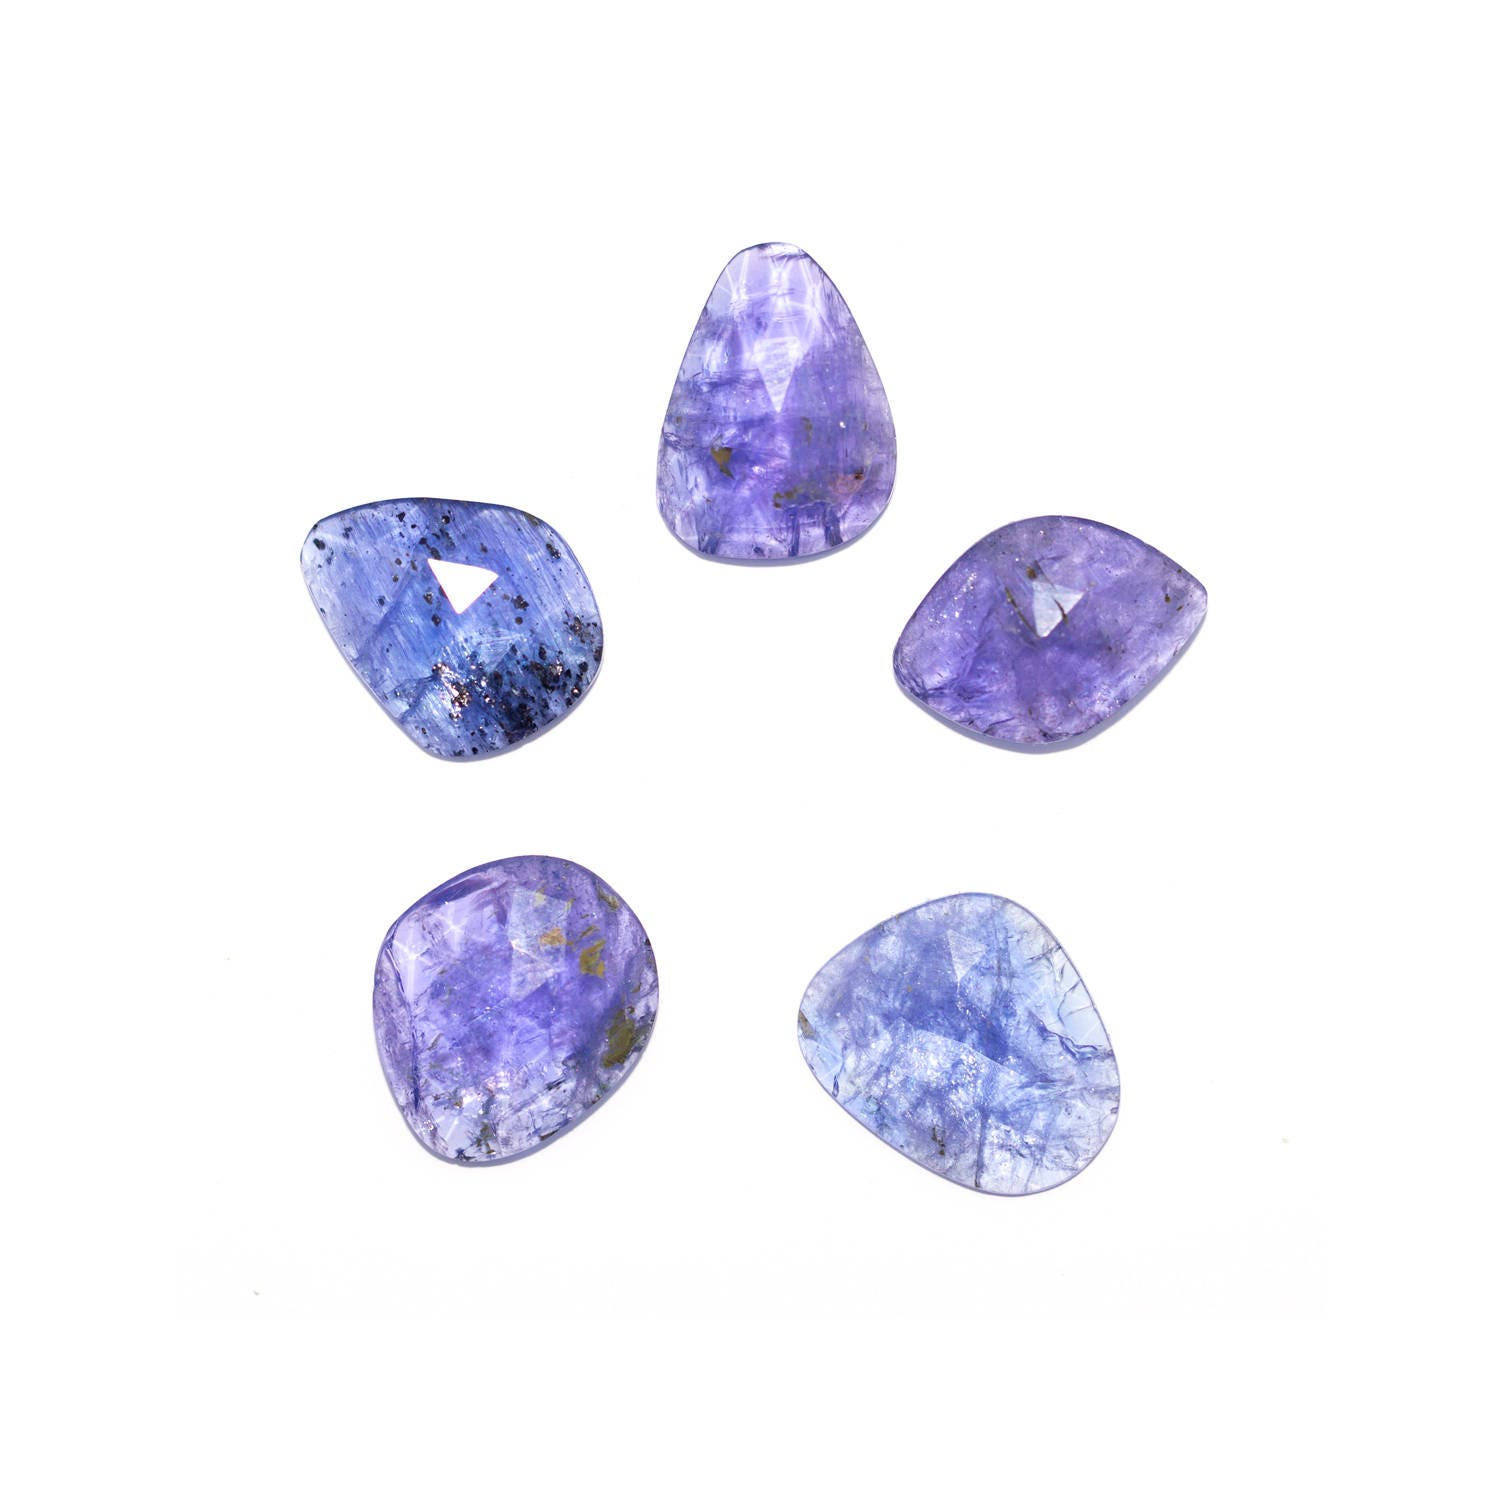 raw wholesale pin tanzanite mineral ebay united republic rough ct tanzania lot loose natural tanzanites of opaque blue